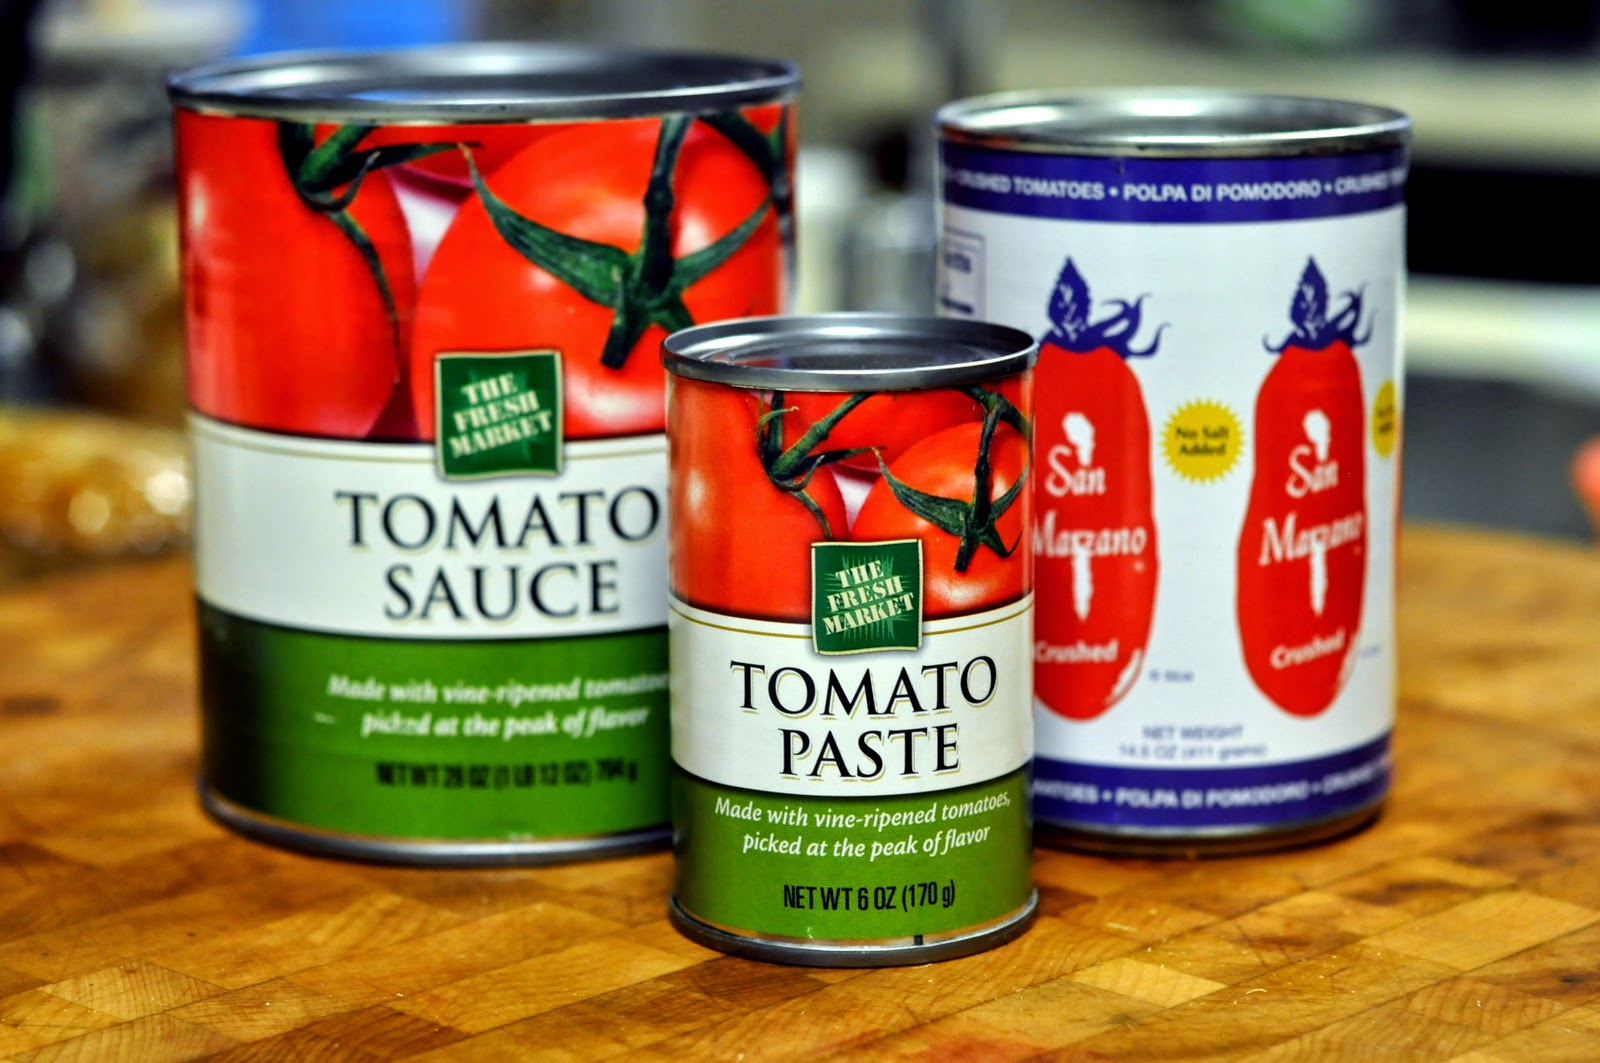 Canned Tomato Sauce, Canned Tomato Paste, and Canned Crushed San Marzano Tomatoes   Taste As You Go